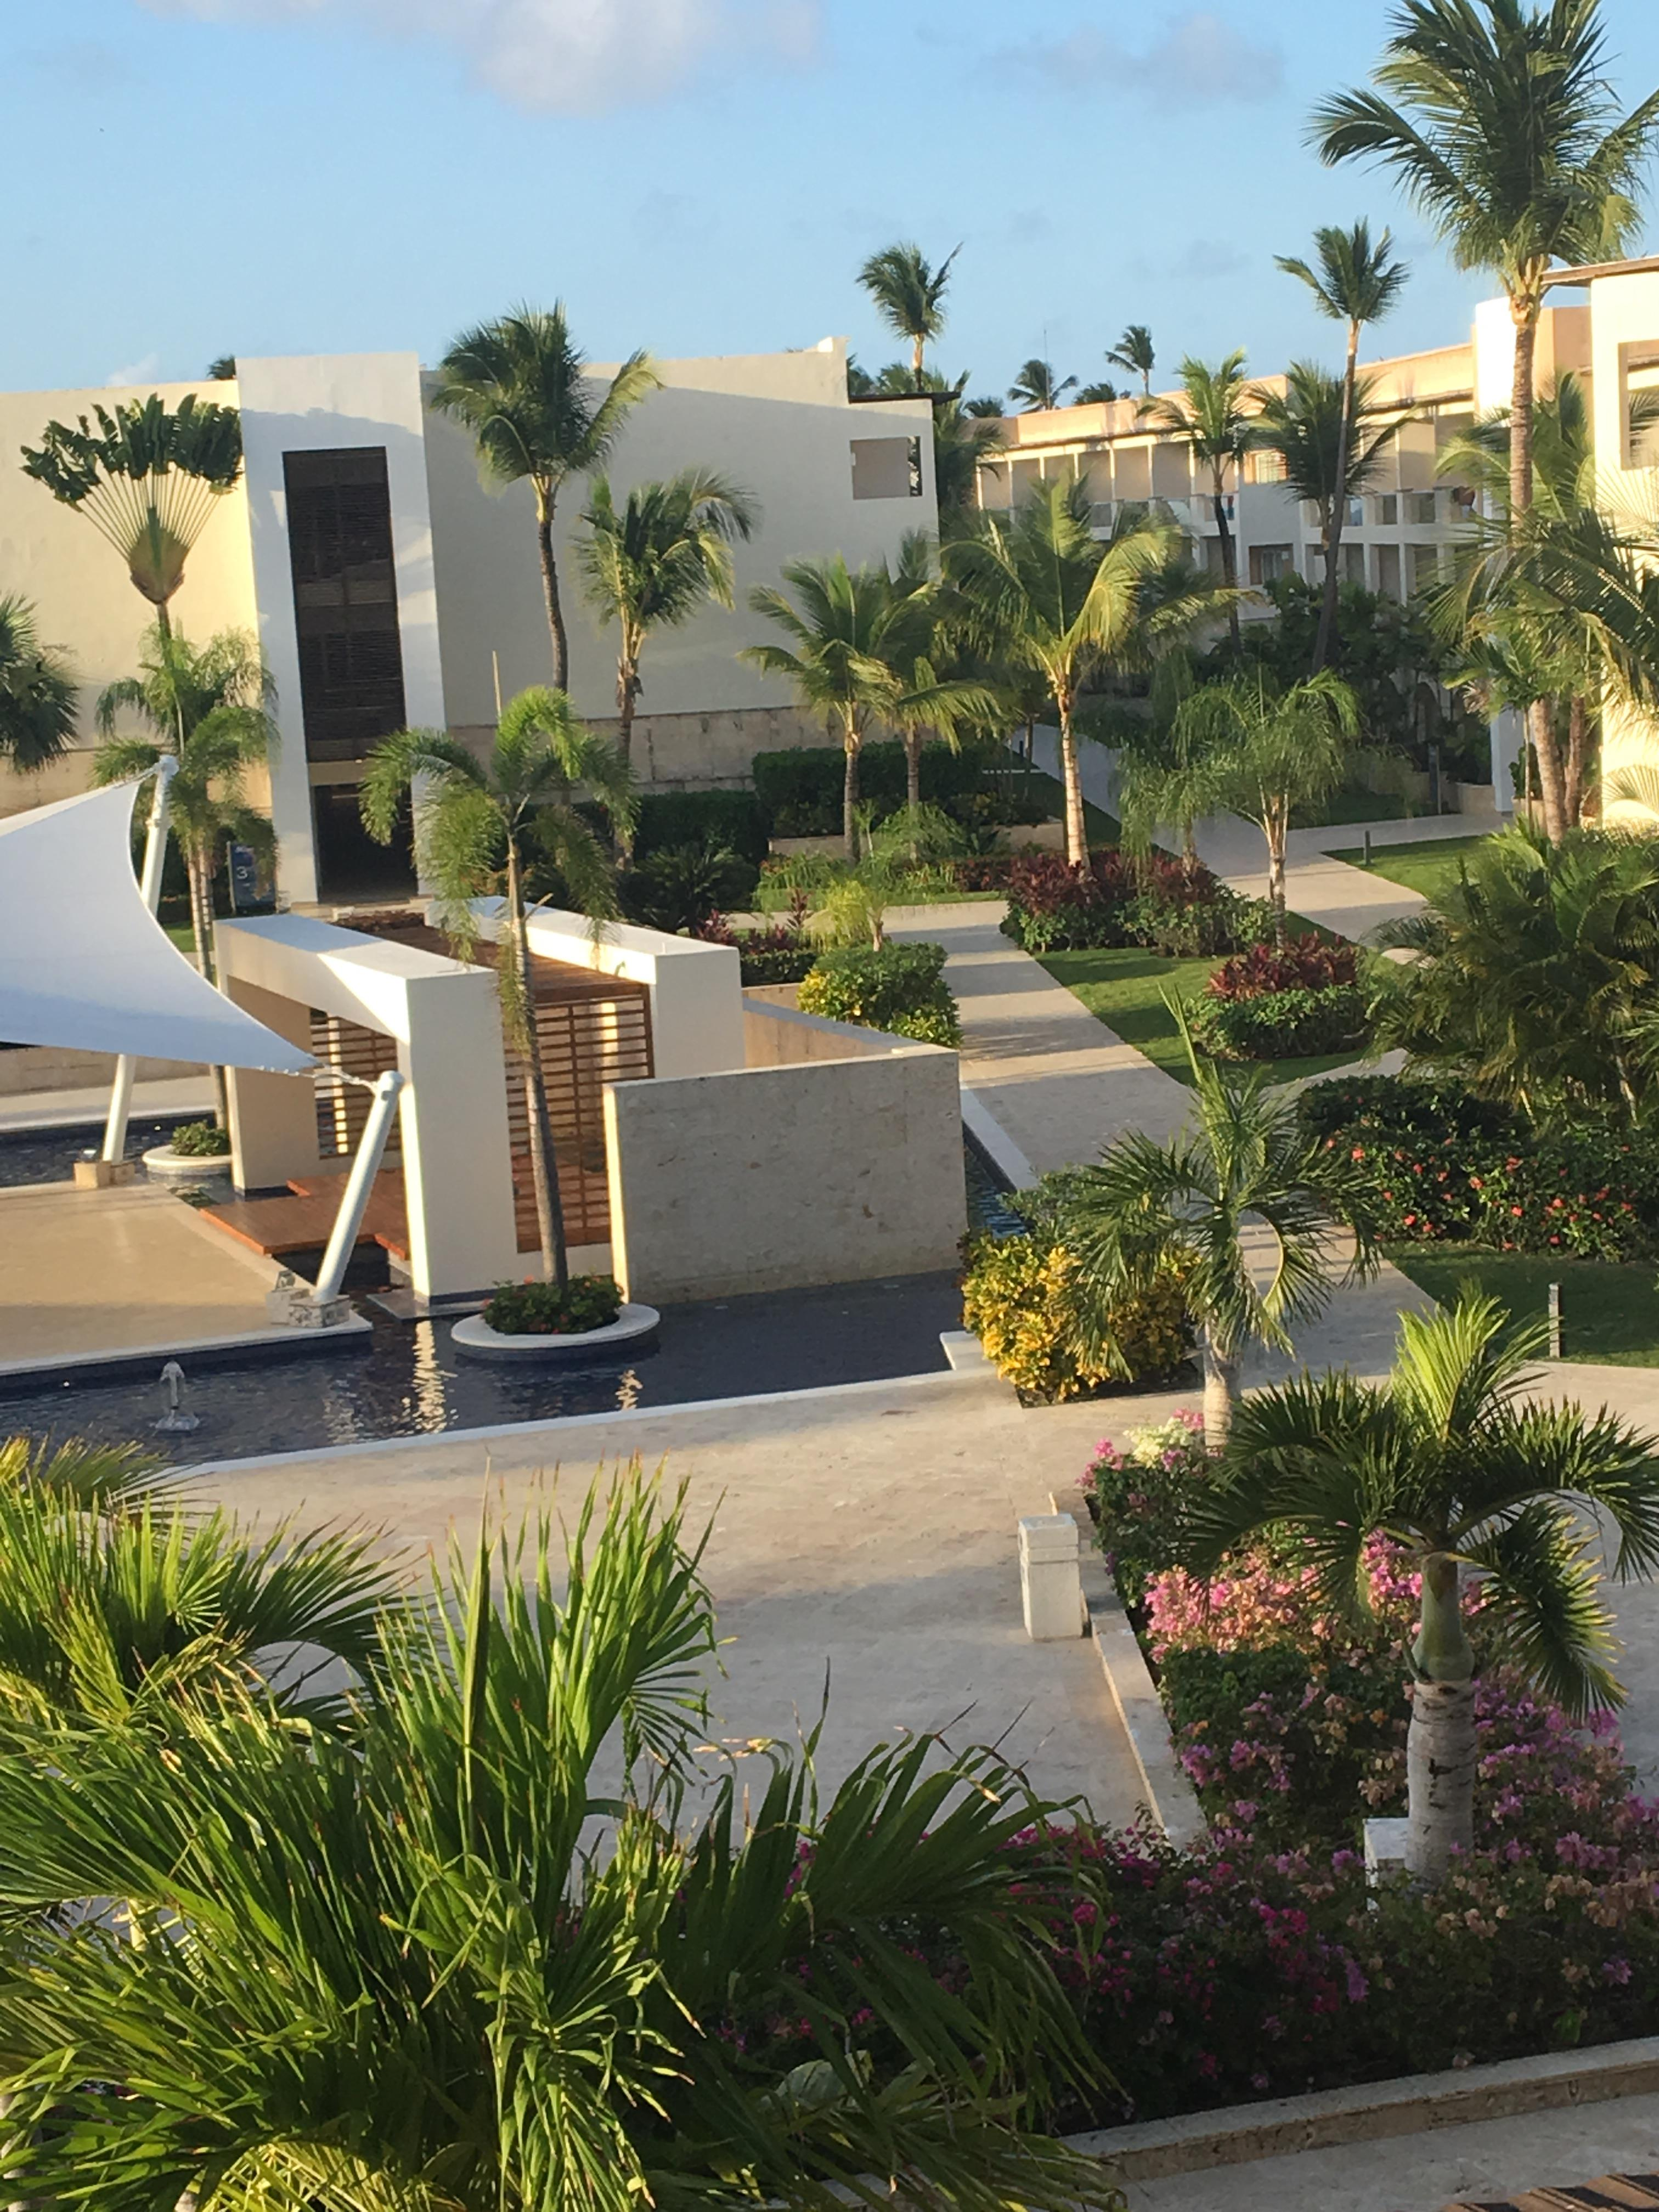 Royalton Punta Cana all inclusive. Photo Credit Melanie Reffes